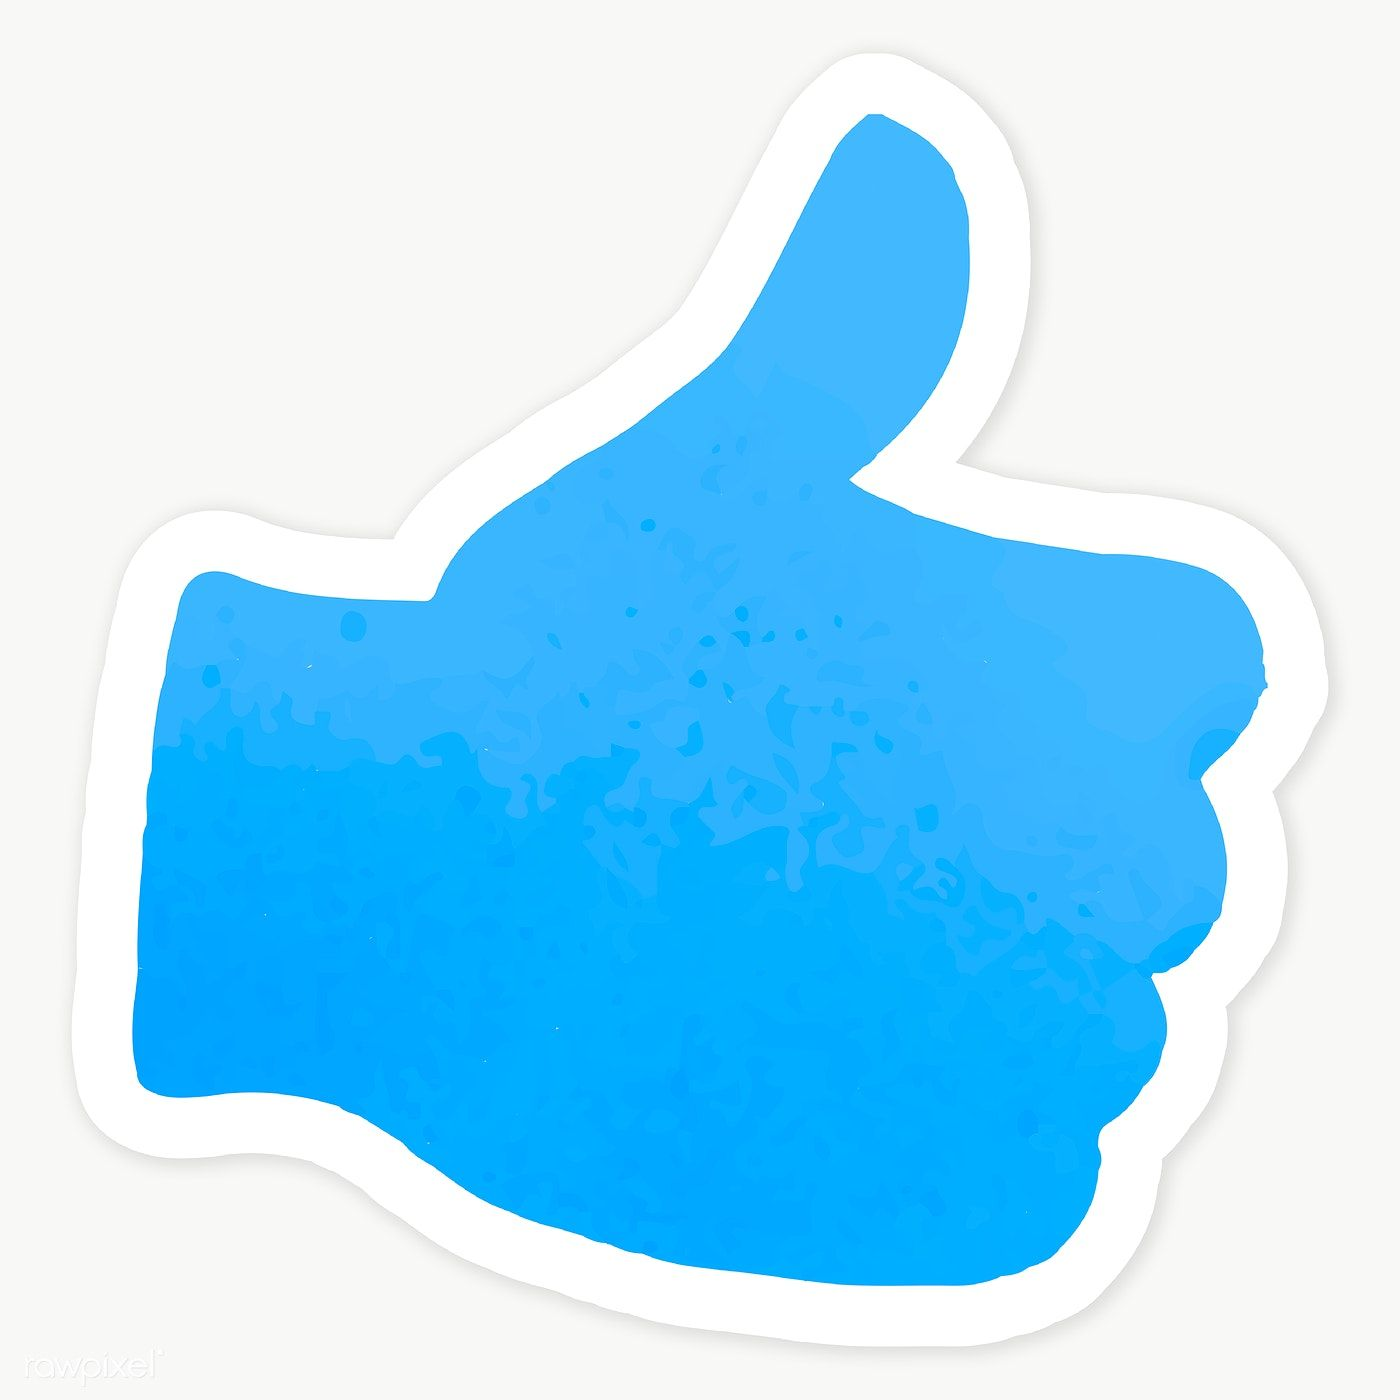 Blue Thumbs Up Sign Social Ads Template Transparent Png Premium Image By Rawpixel Com Aum Thumbs Up Sign Social Ads Social Media Icons Vector